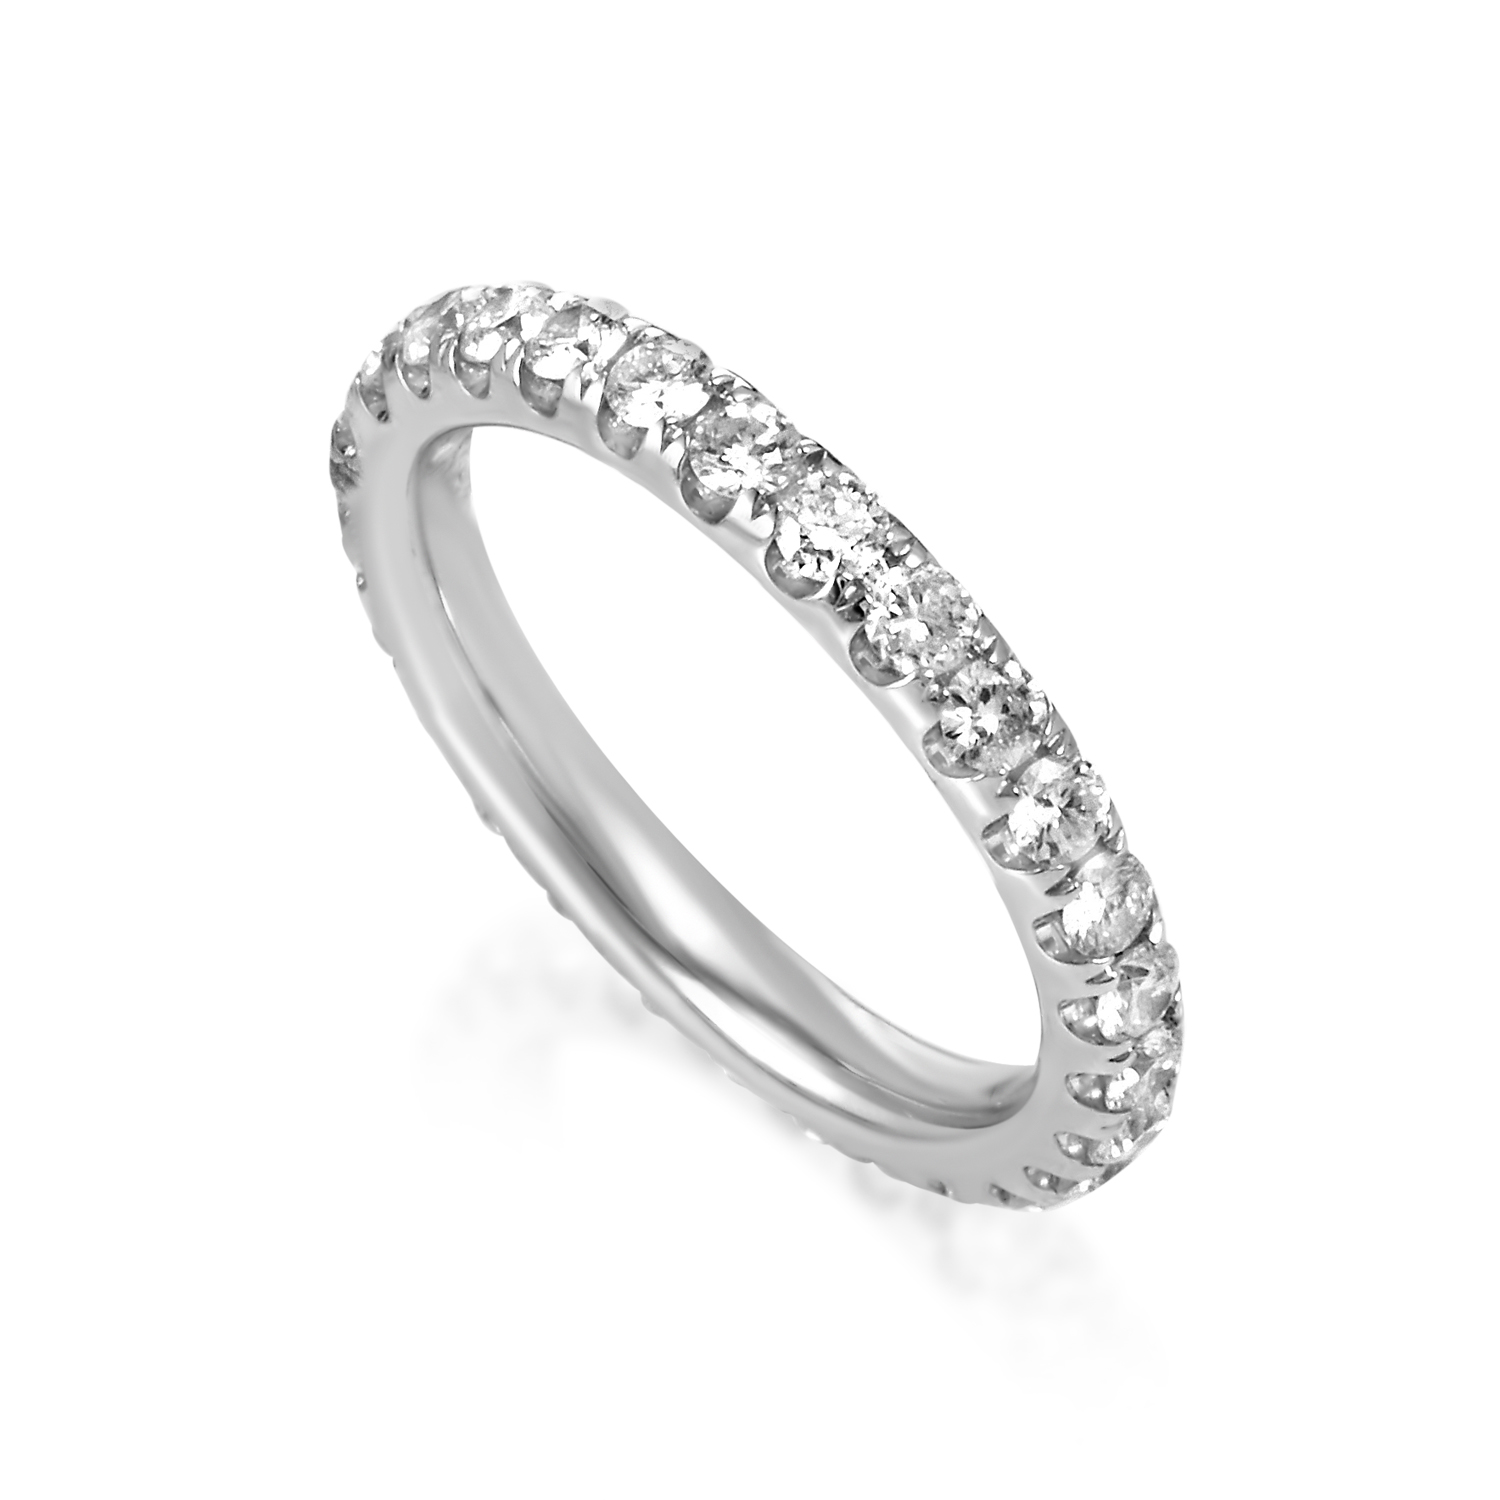 Women's 18K White Gold Diamond Eternity Band Ring KO52541RBZ